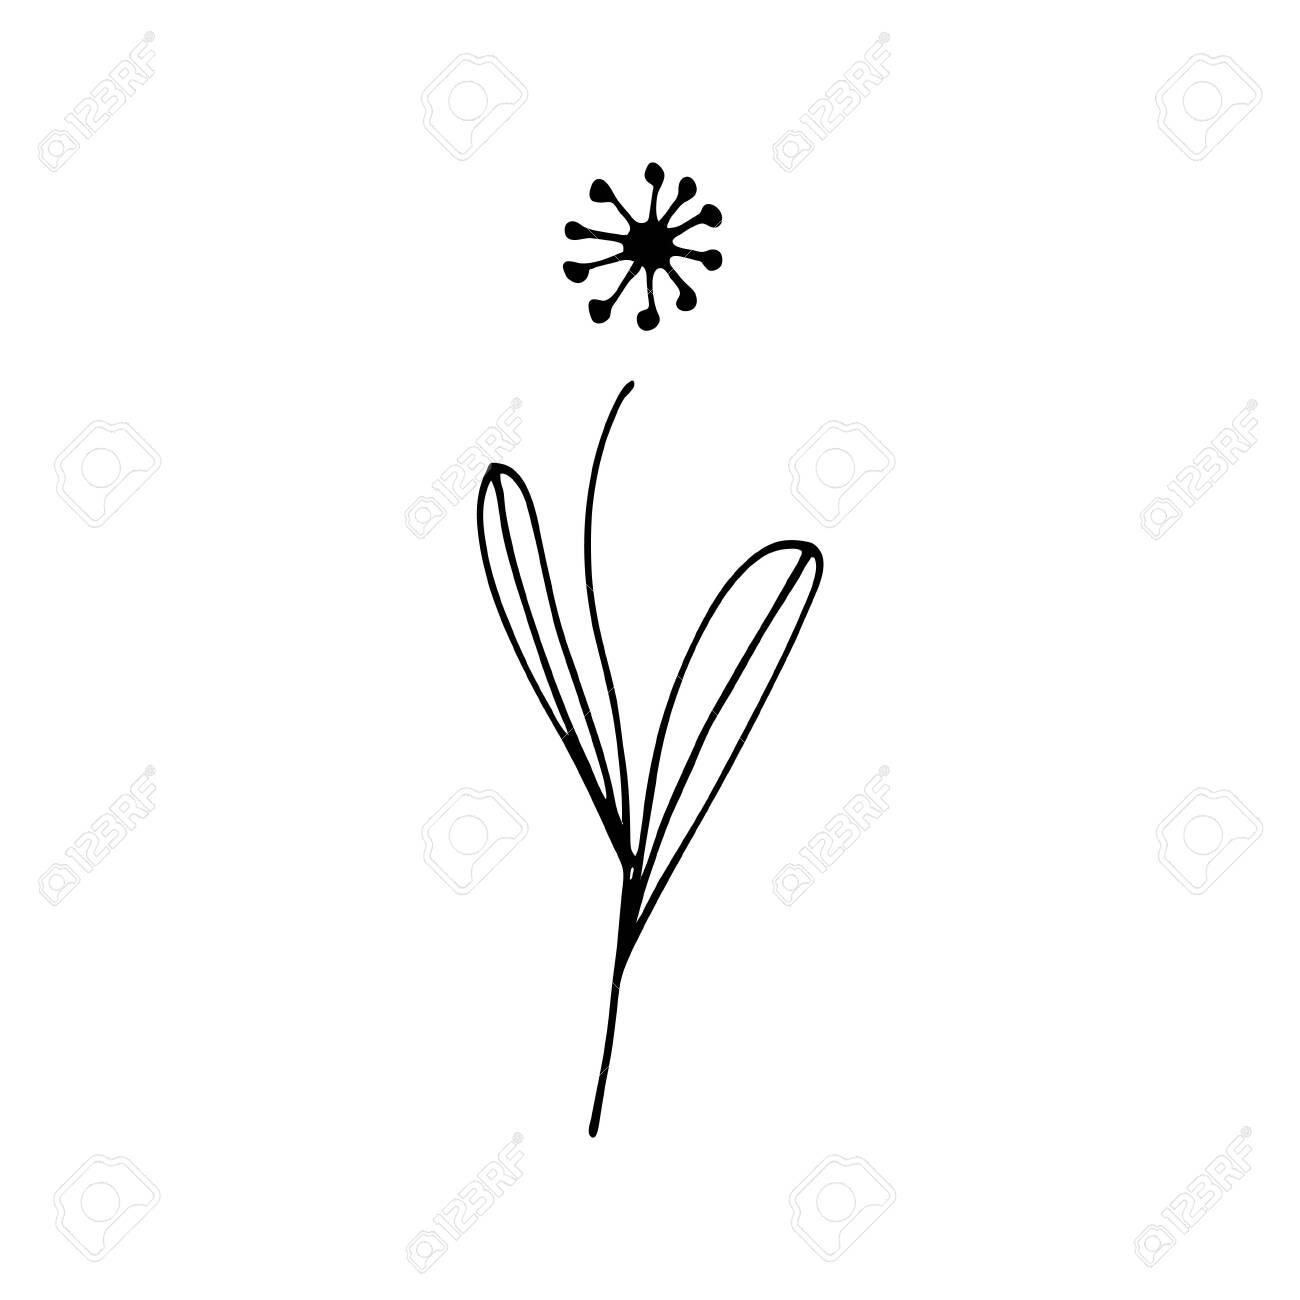 Colorful Black And White Pattern For Coloring Daisy Flower Illustration Royalty Free Cliparts Vectors And Stock Illustration Image 143584159